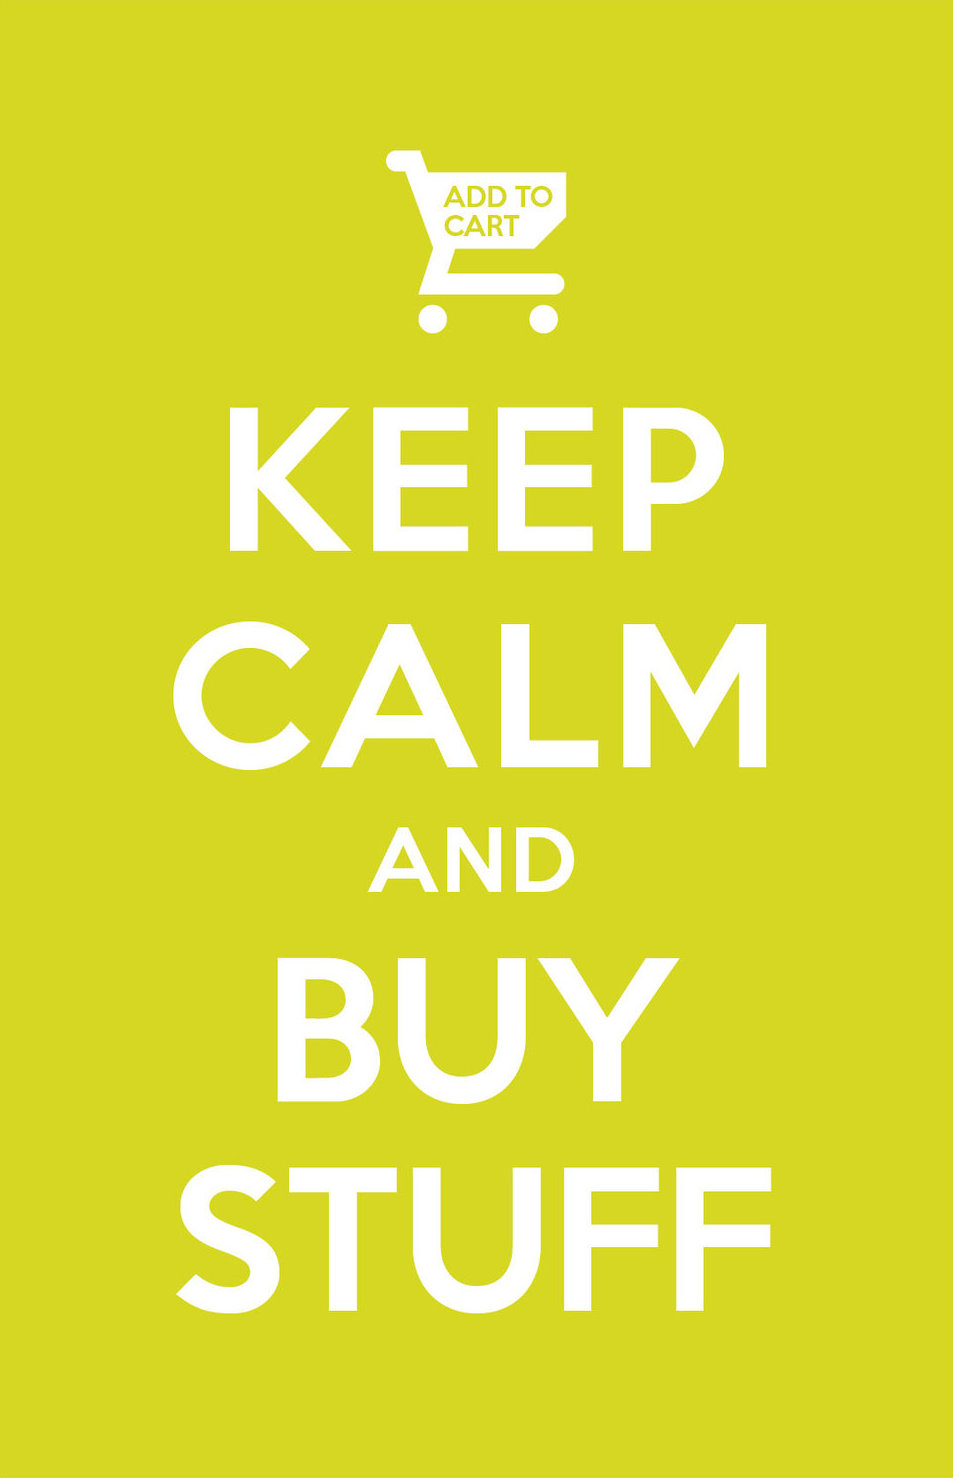 keep_calm_and_buy_stuff_by_manishmansinh-d4k9kx4